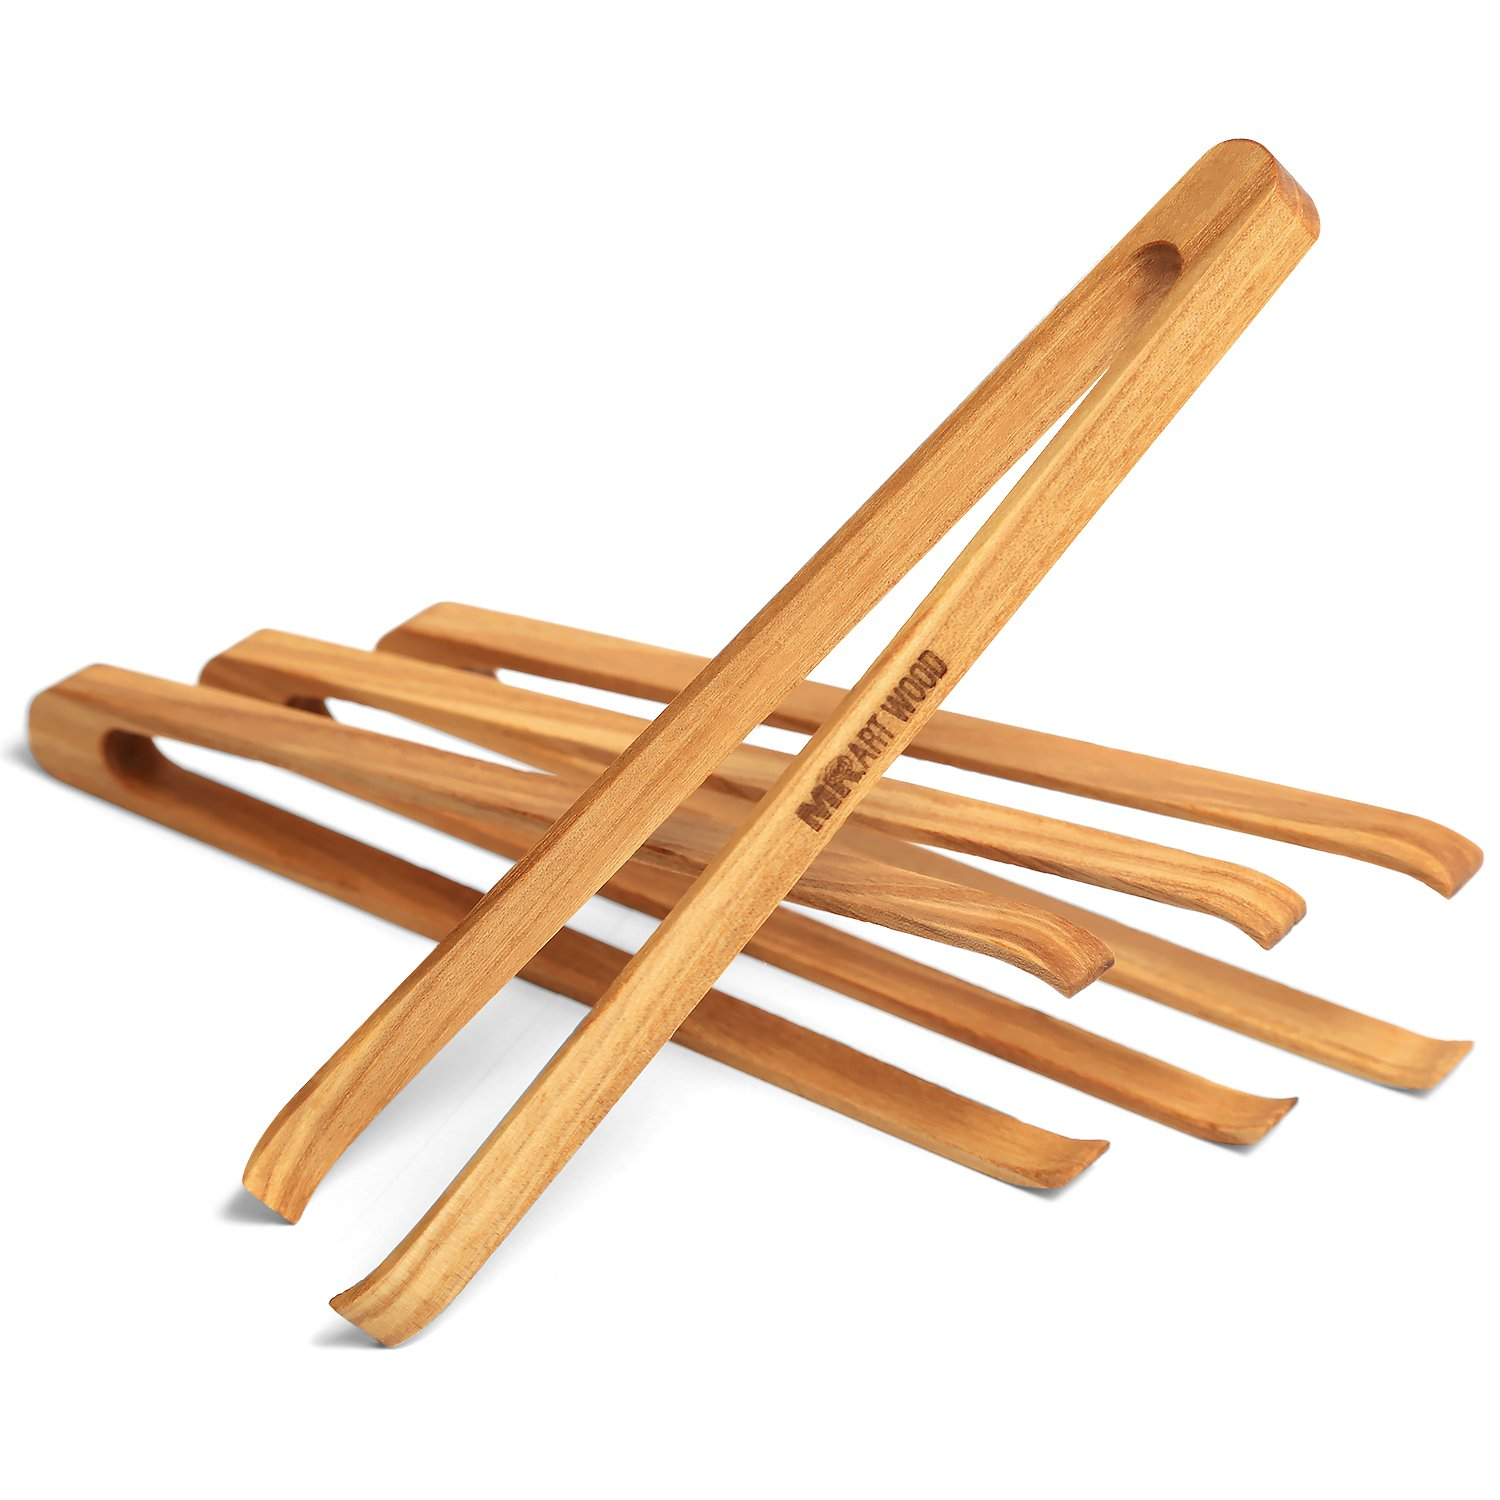 Mr.Art Wood Mini Wooden Appetizer Tongs (Pack of 4), 6'' Generous Length, Lightweight, Easy Grip, 100% Natural One-Piece Ash Wood by Mr.Art Wood (Image #1)